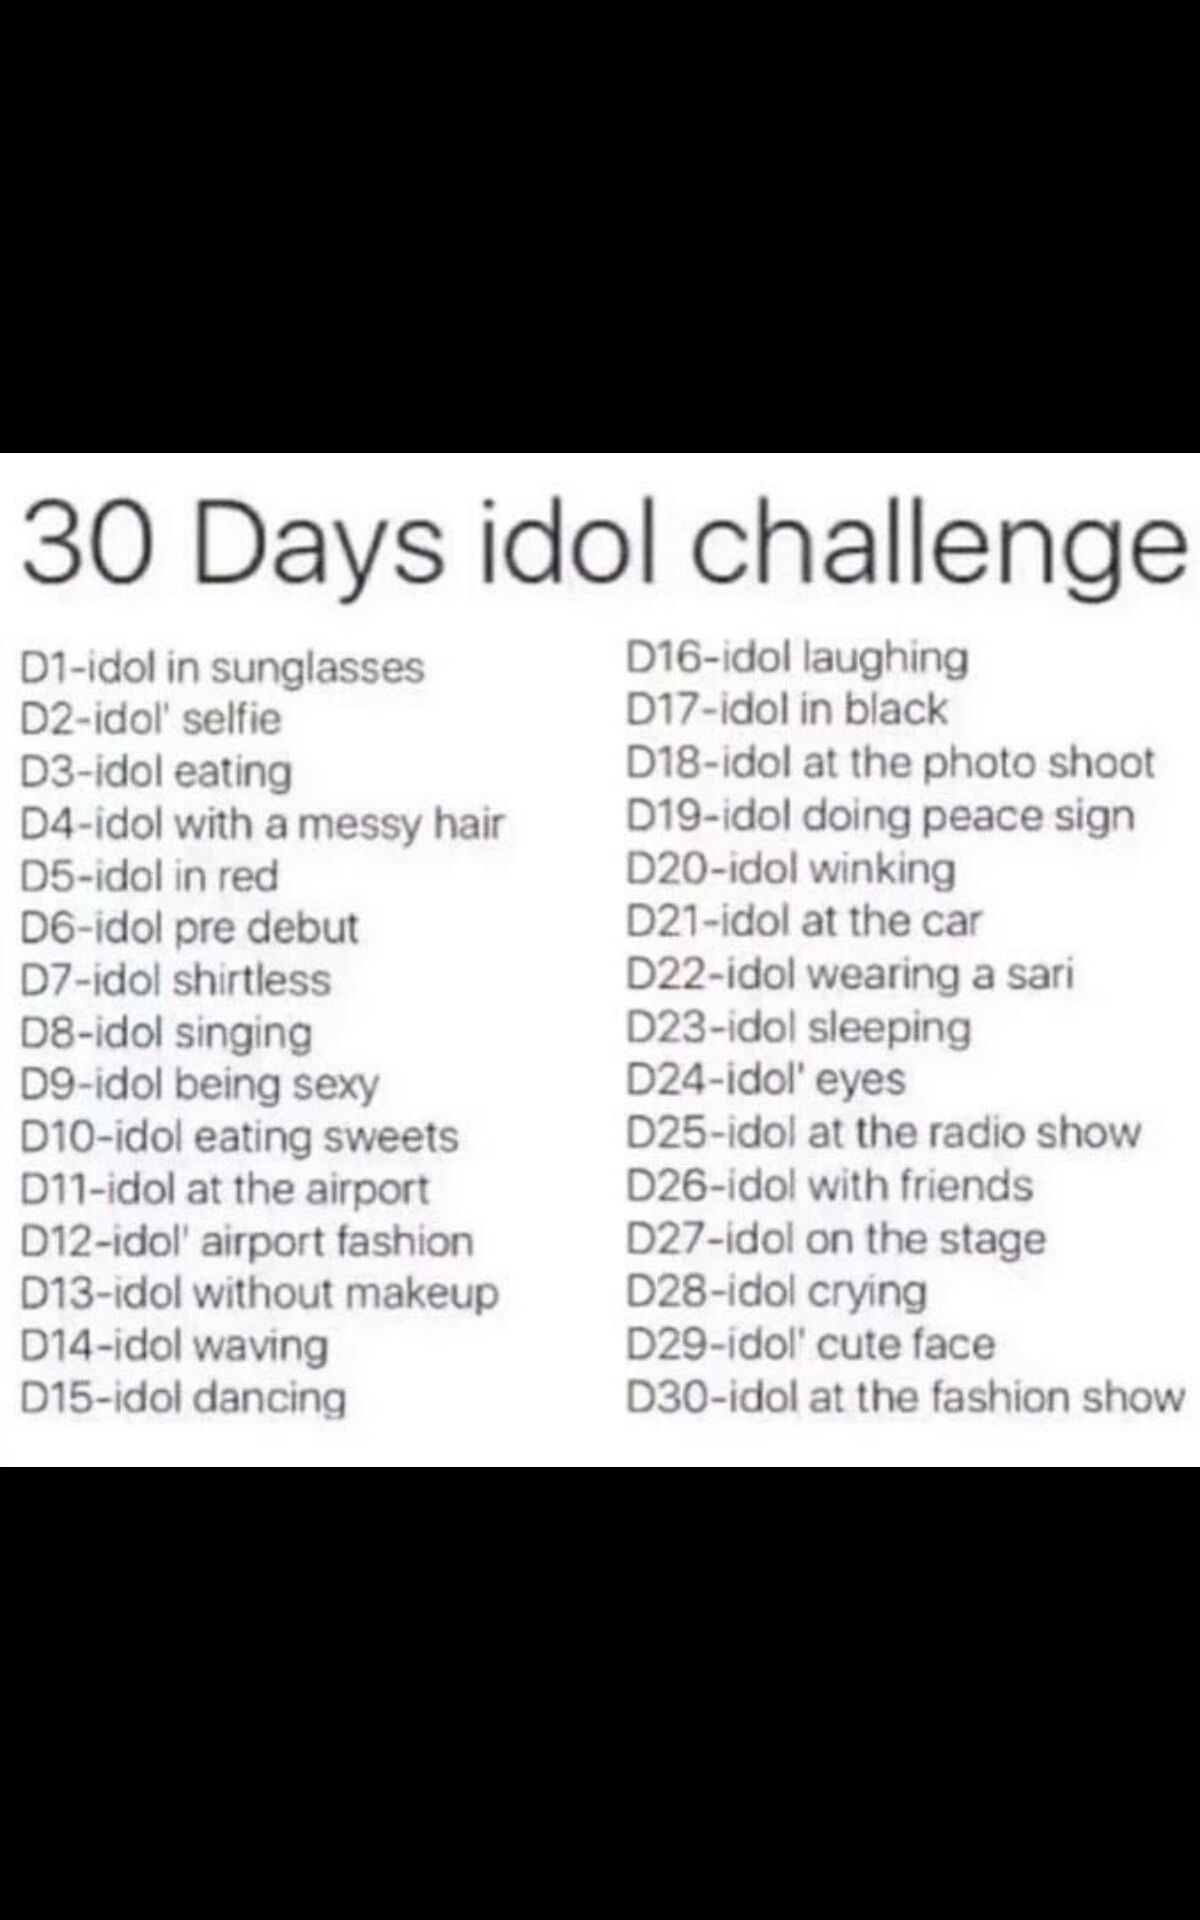 Maze Runner Jokes 2 30 Day Idol Challenge Wattpad